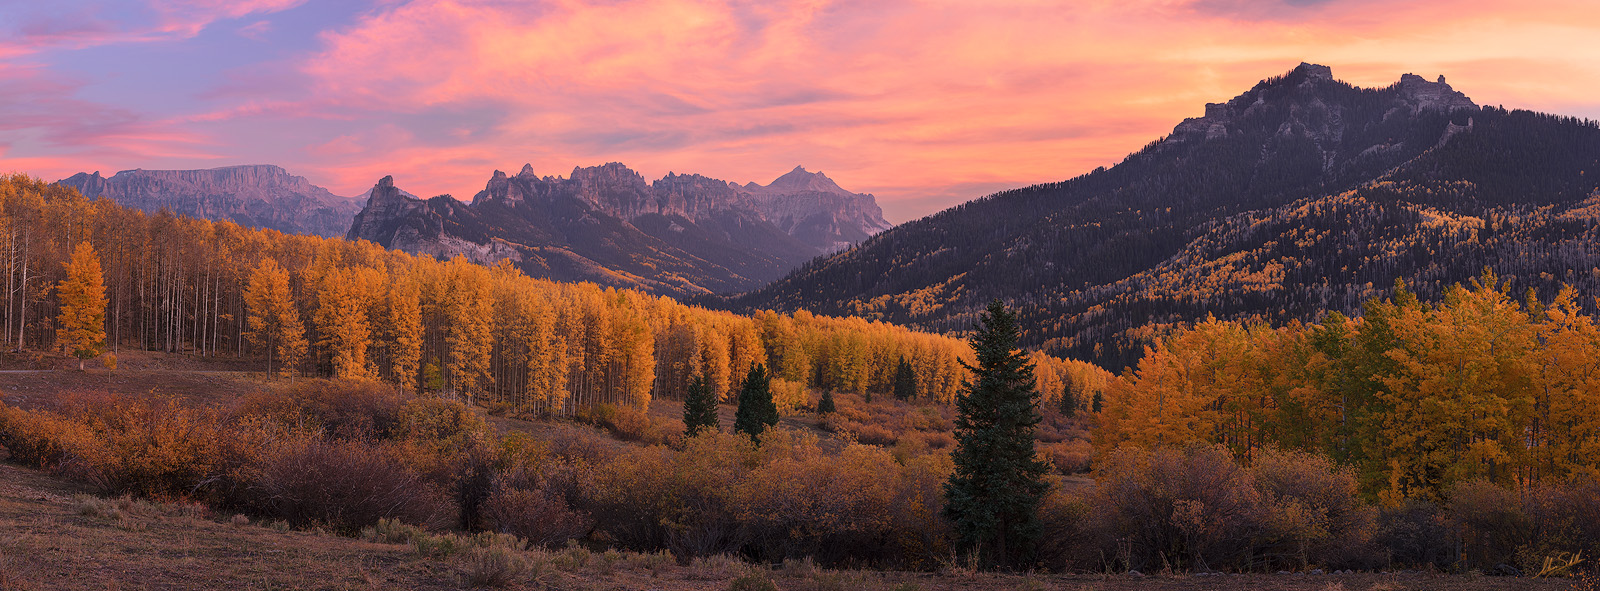 A panoramic view of a colorful sunset over the Big Blue Wilderness of the San Juan Mountains in southwestern Colorado. © Adam...